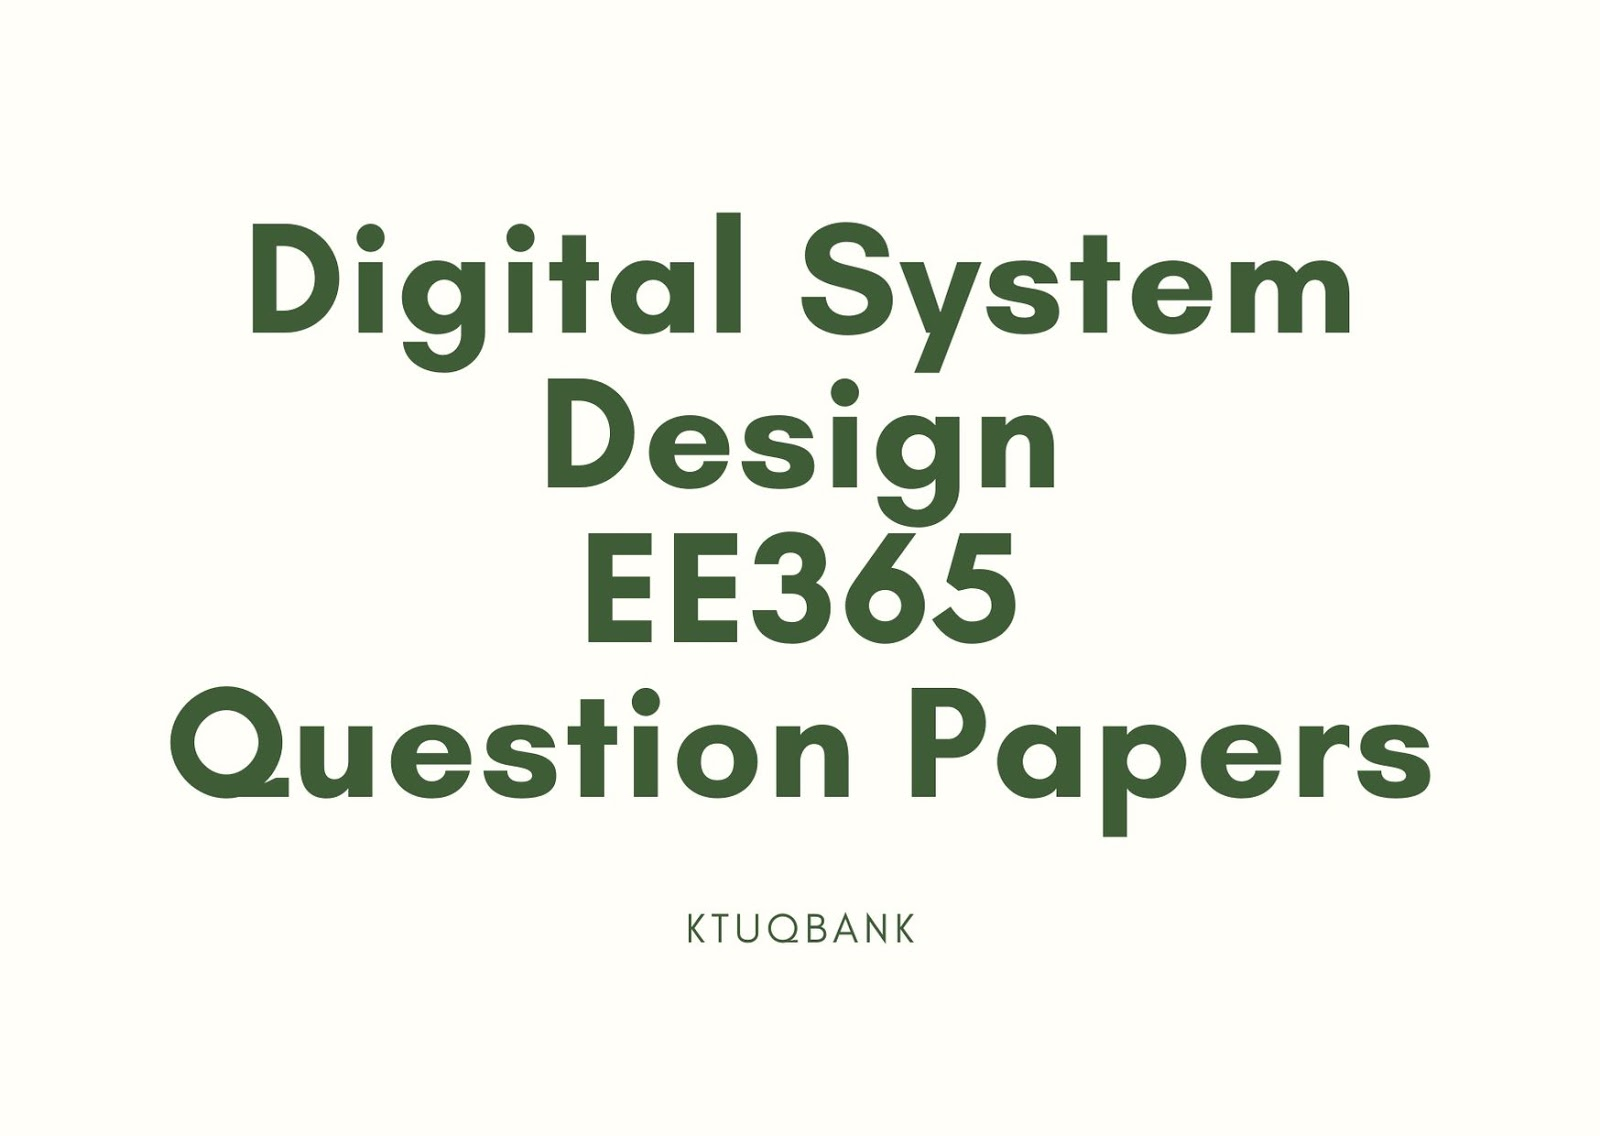 Digital System Design | EE365 | Question Papers (2015 batch)